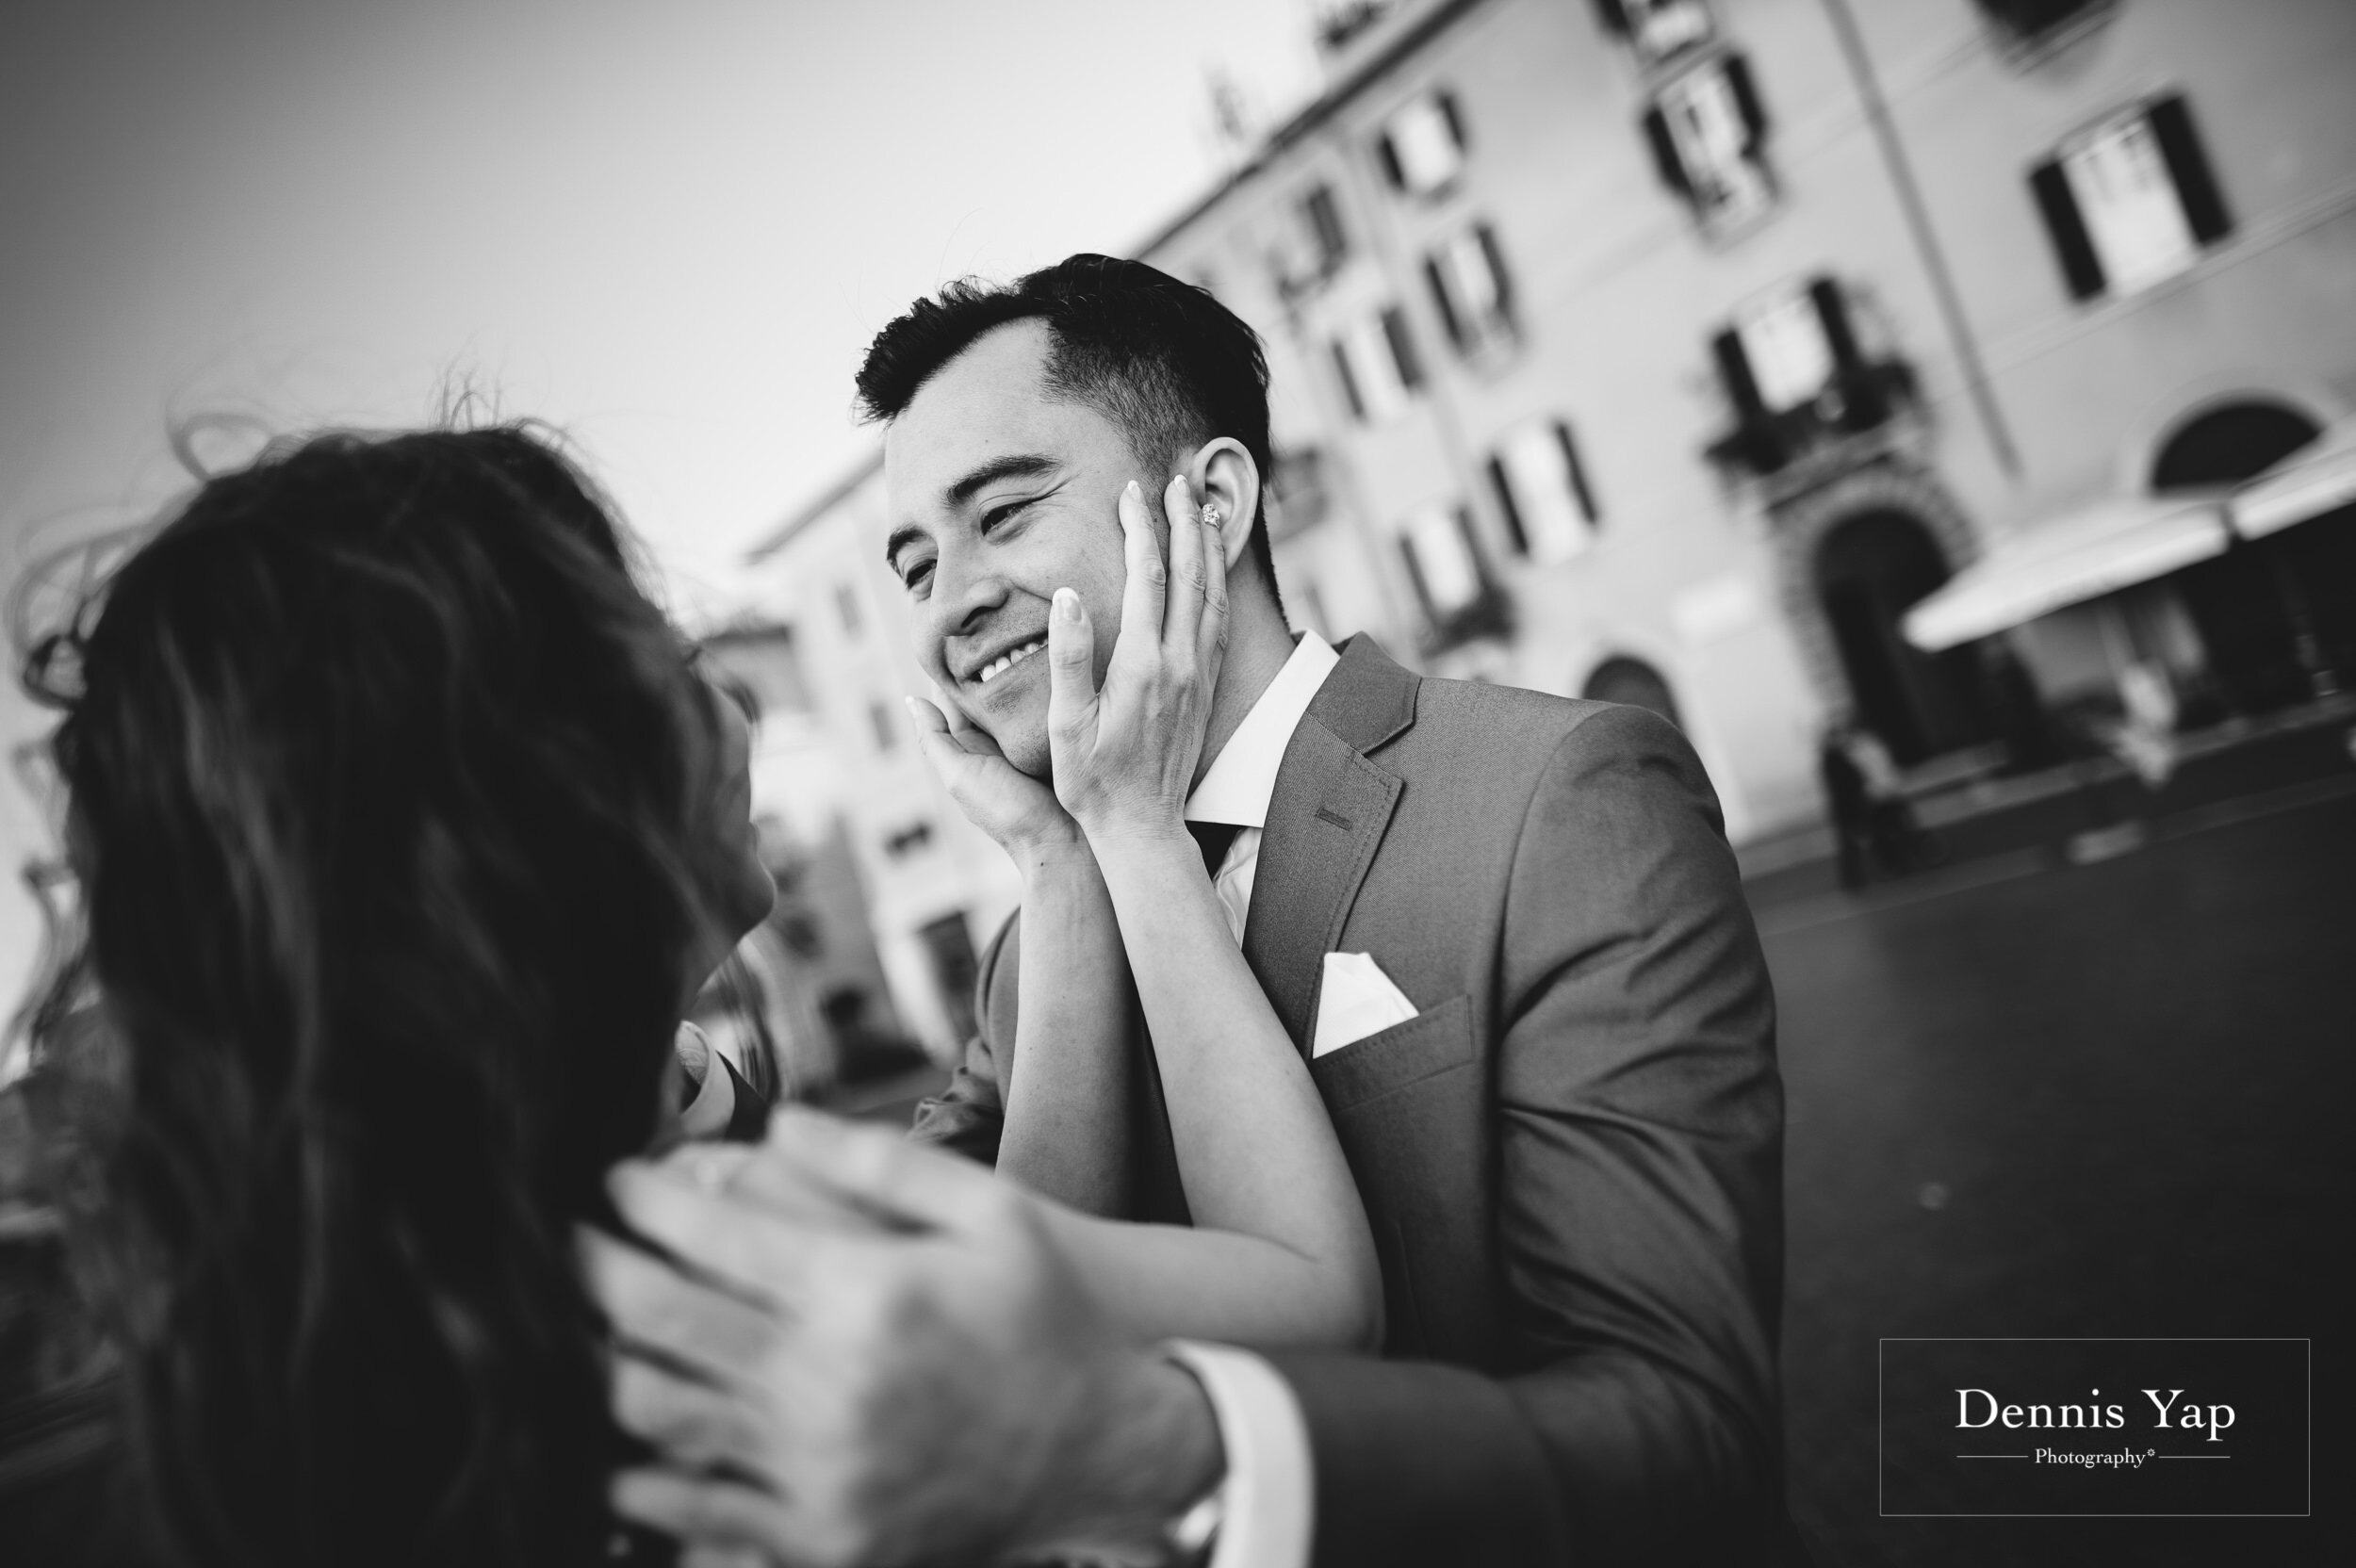 benny alicia pre wedding rome dennis yap photography classic beloved style candid natural-113.jpg